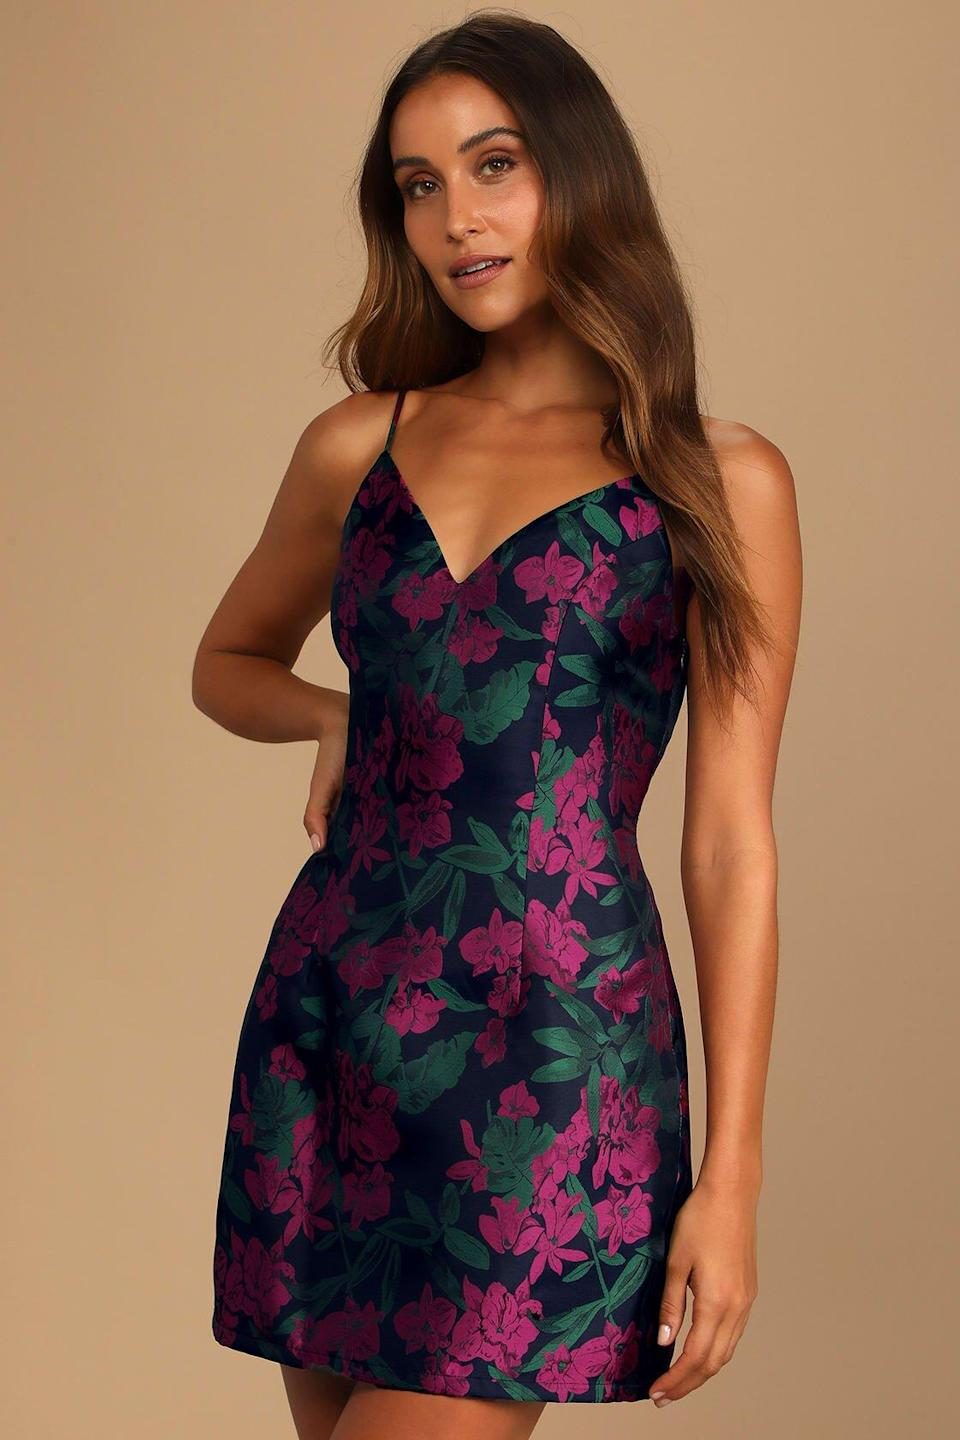 Lulus Absolutely Exquisite Navy Blue Floral Jacquard Mini Dress